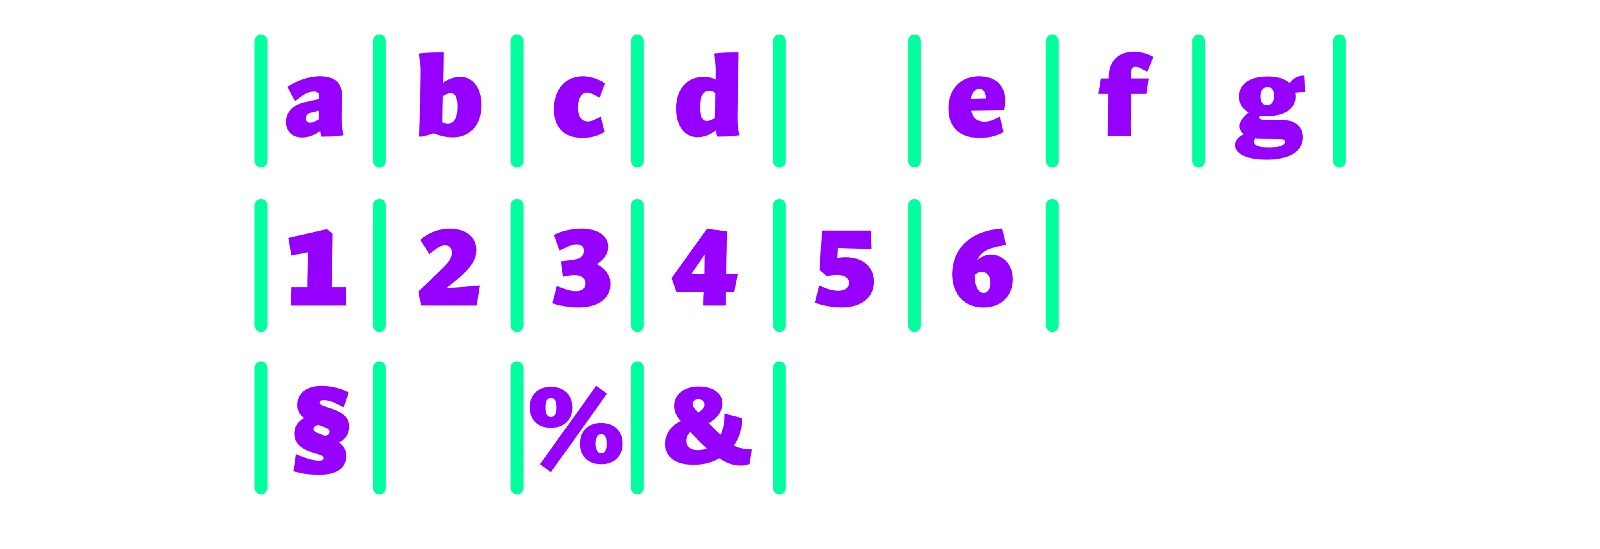 Punctuation 1 the linguistic side cast to understand how punctuation marks behave within the segments the marks are again divided into two groups punctuation marks are either fillers or clitics buycottarizona Choice Image